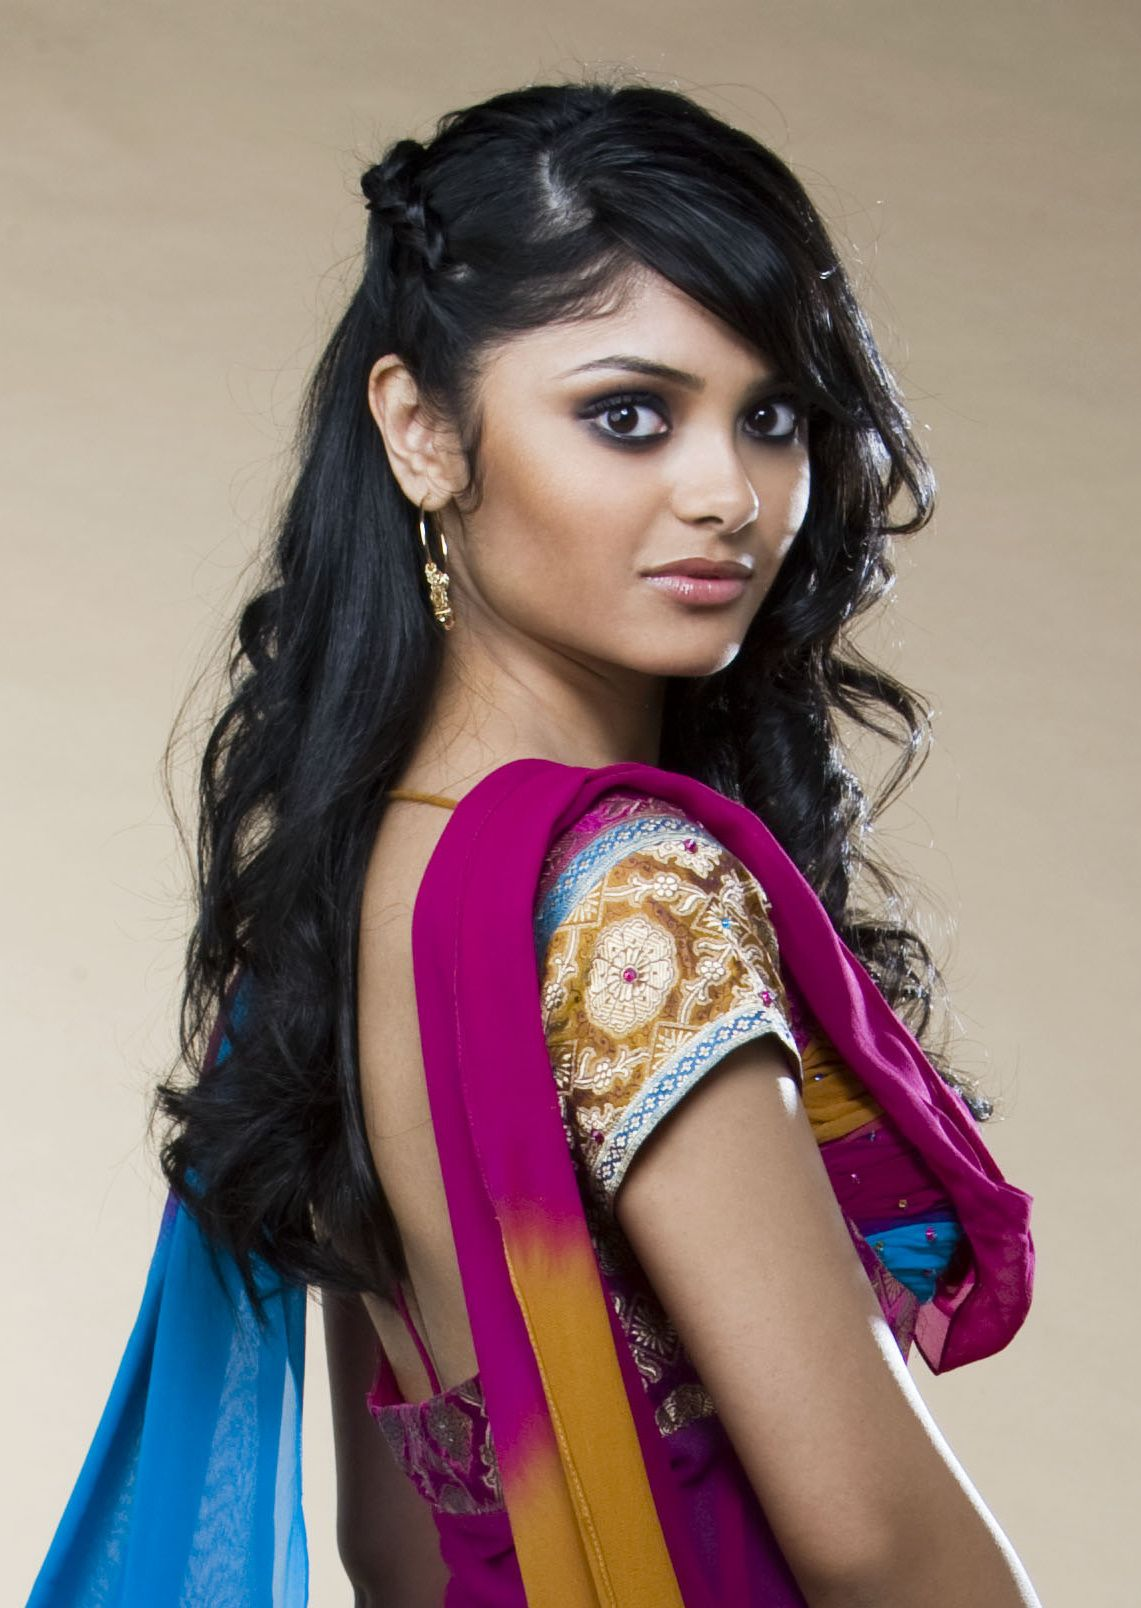 Afshan azad google search interesting and beautiful people afshan azad google search thecheapjerseys Image collections